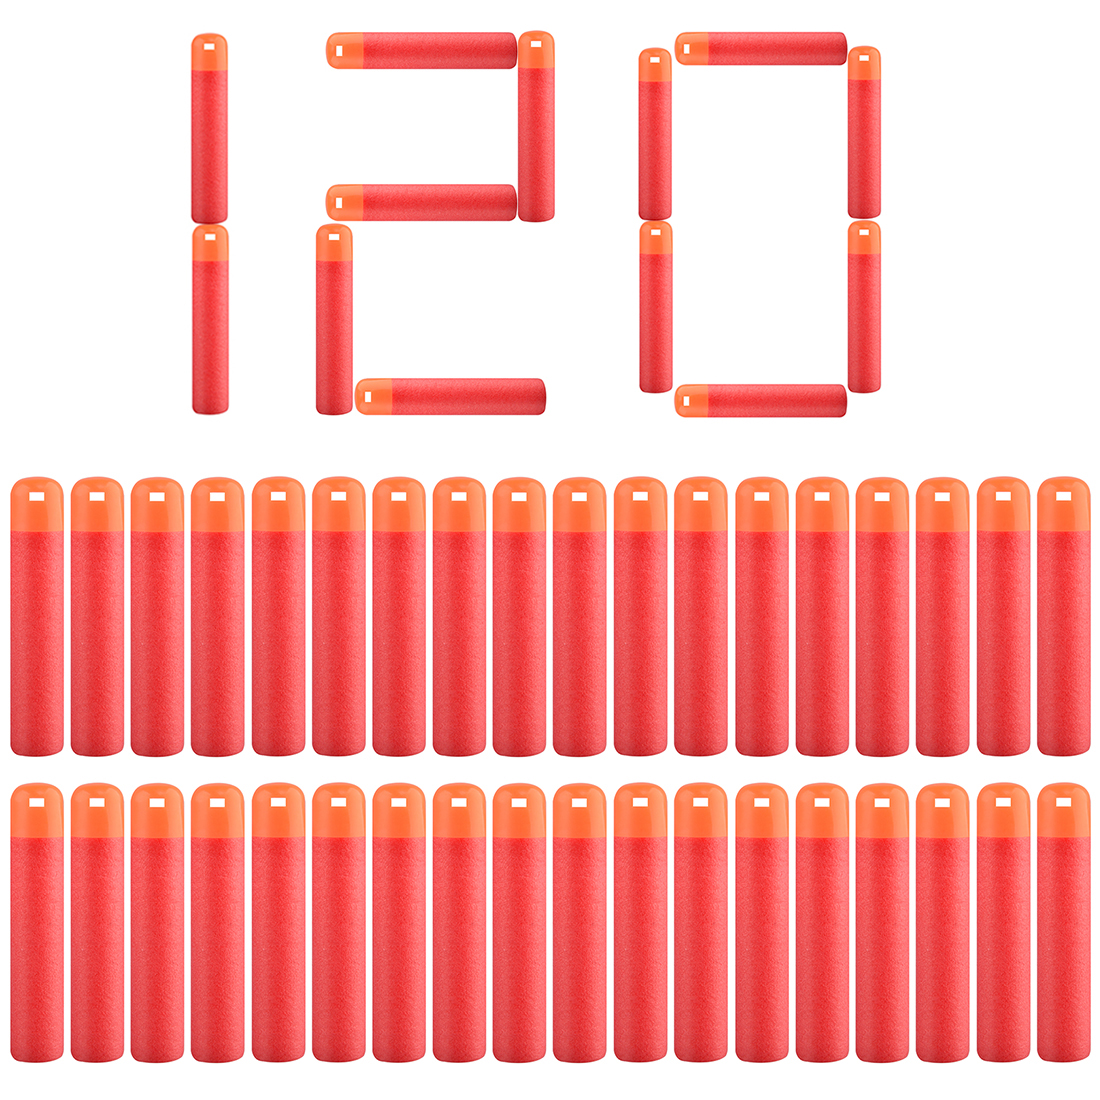 120/240 Pcs Soft Bullet For Nerf Mega Paintball Hollow Soft Head Foam Bullets Weapons - Red